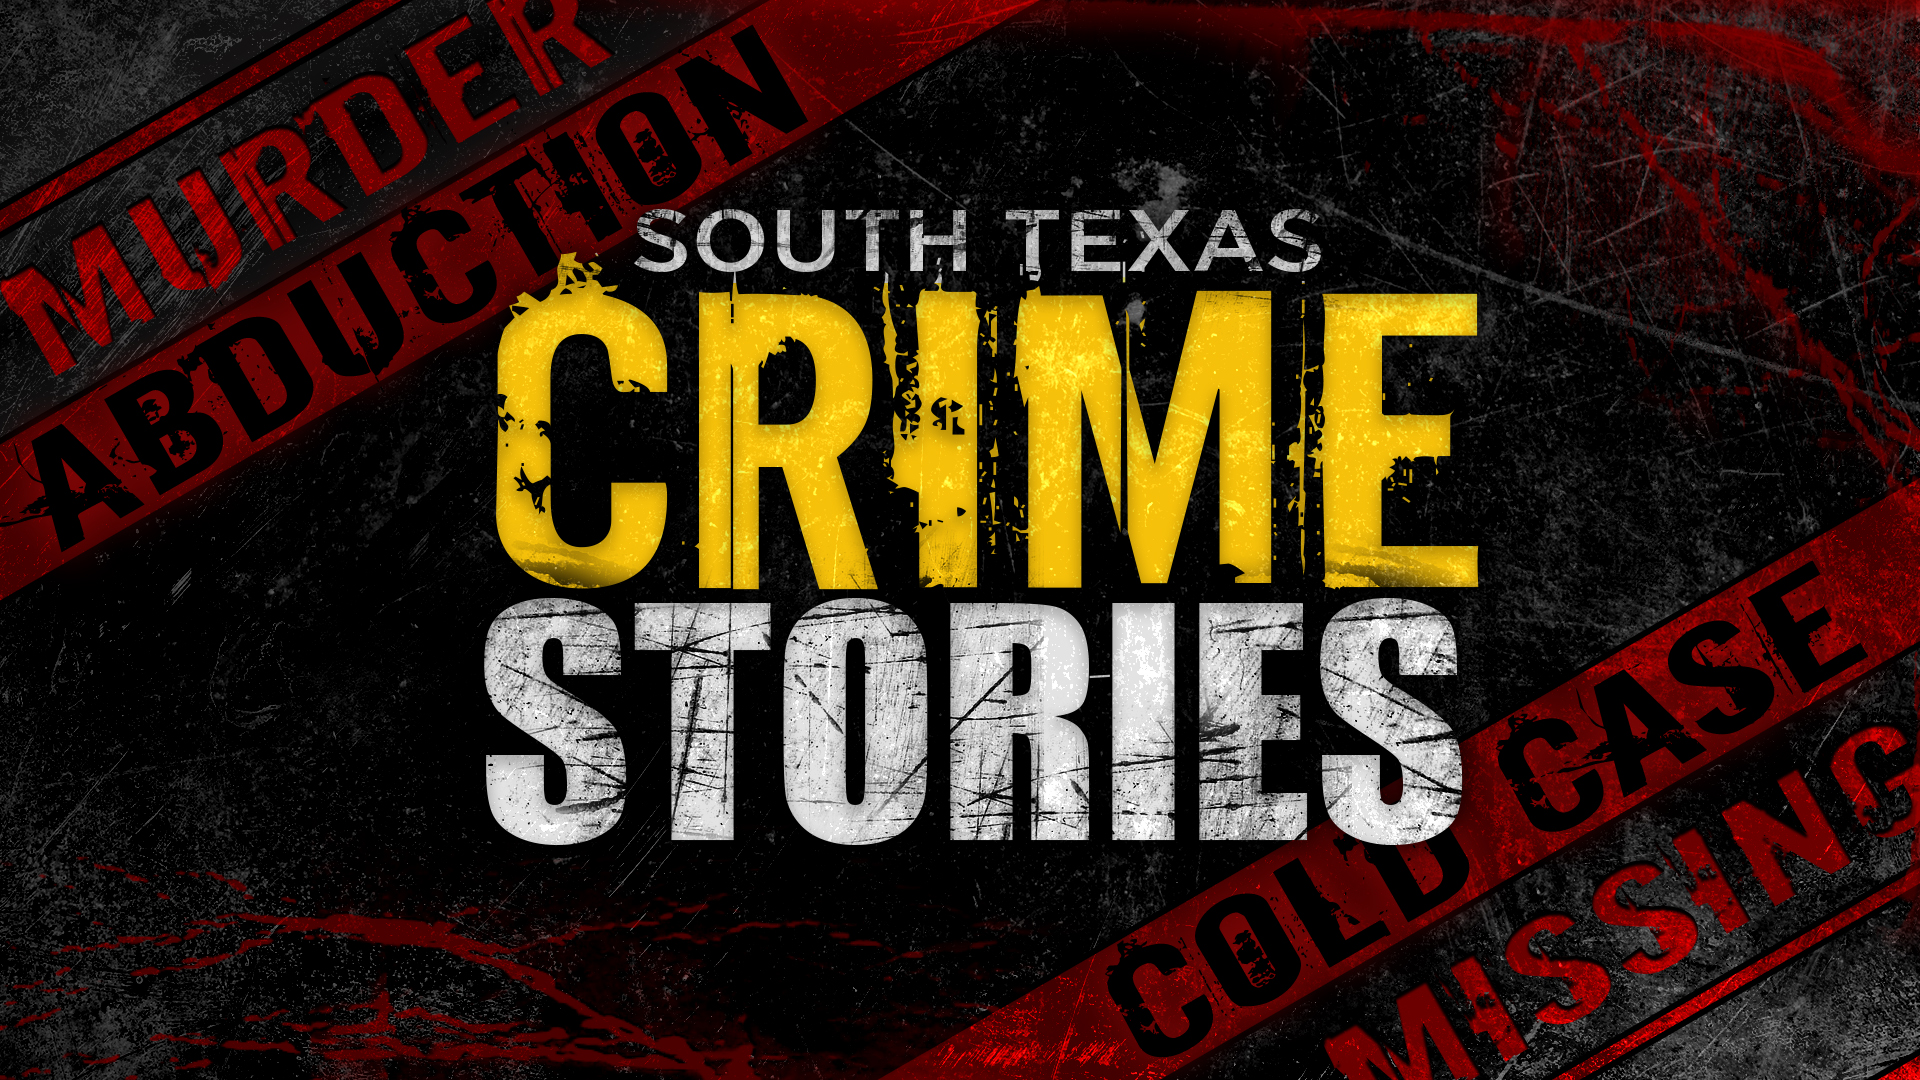 South Texas Crime Stories